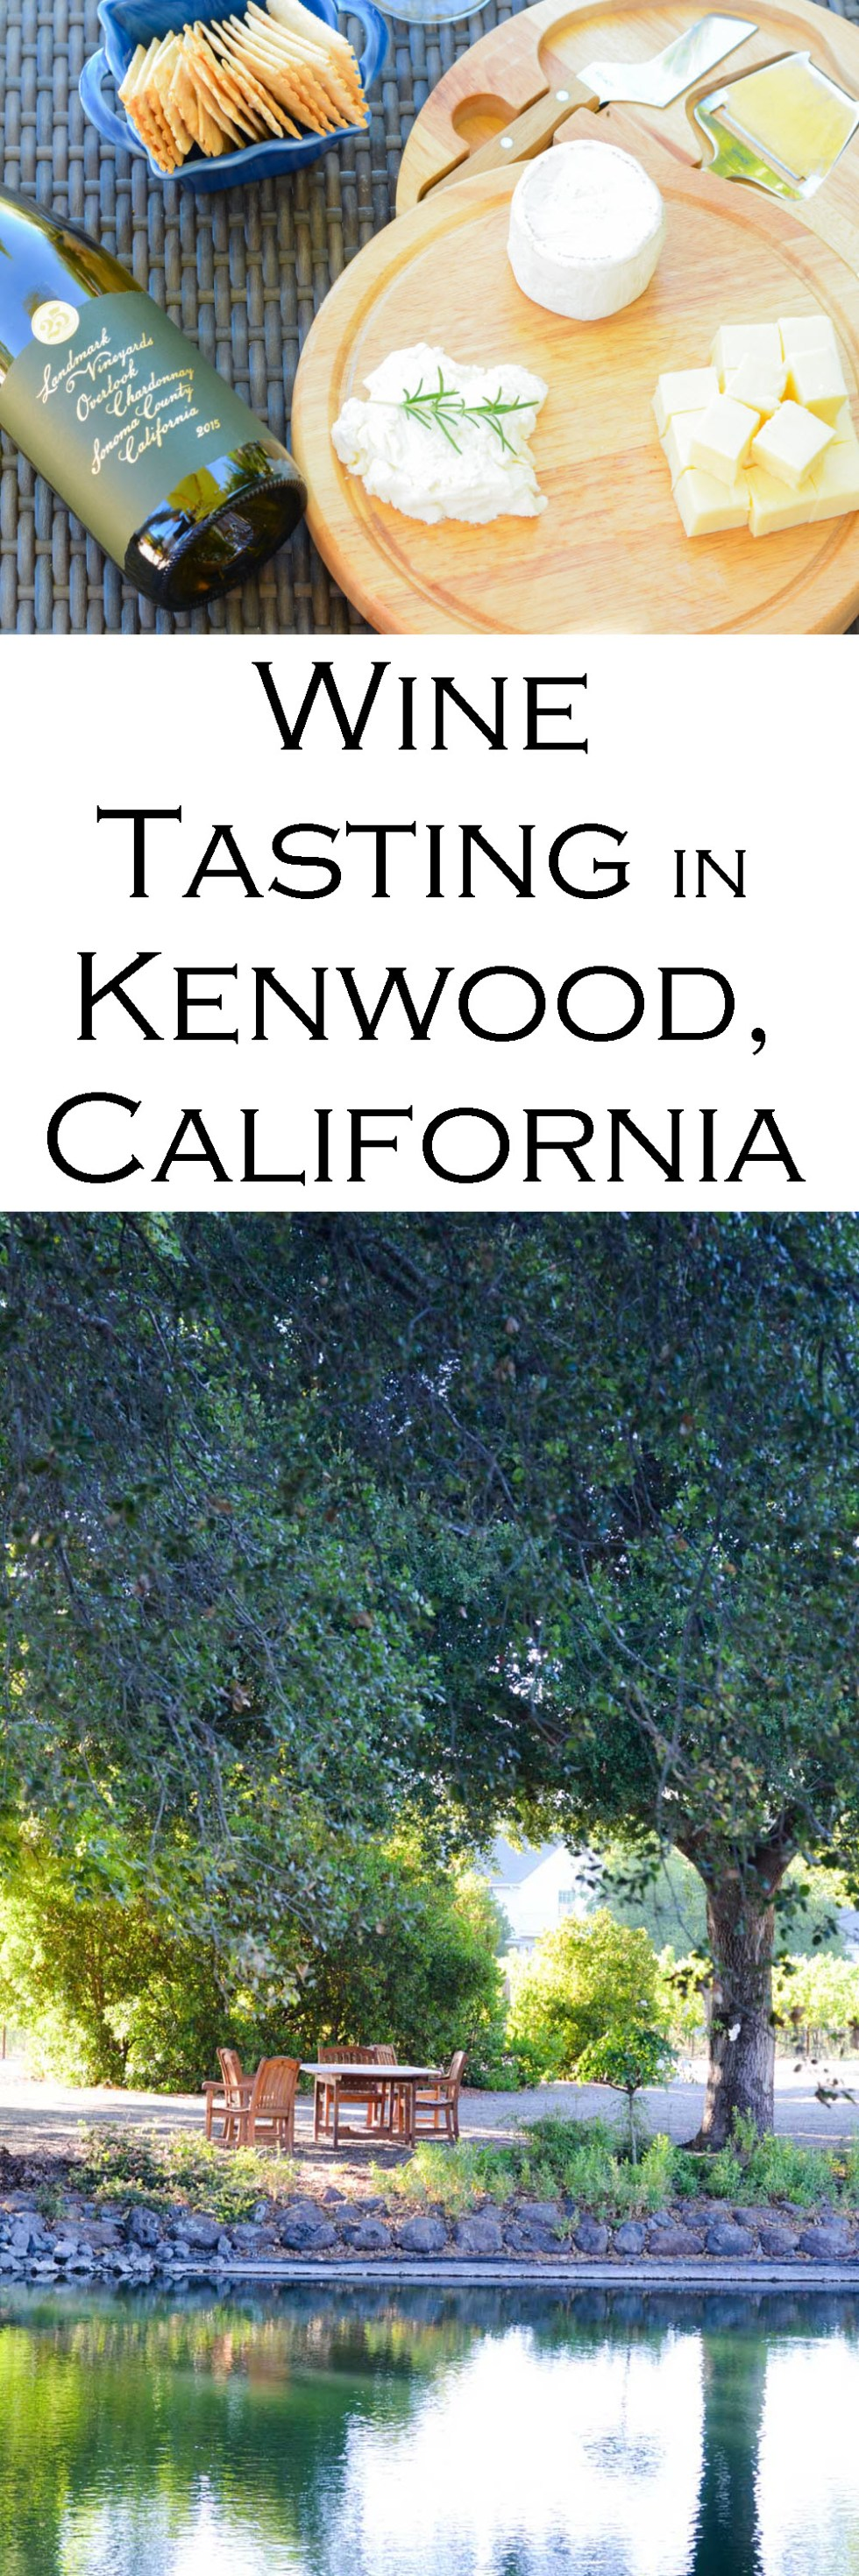 Landmark Vineyards in Kenwood, CA - Great Winery near Santa Rosa.